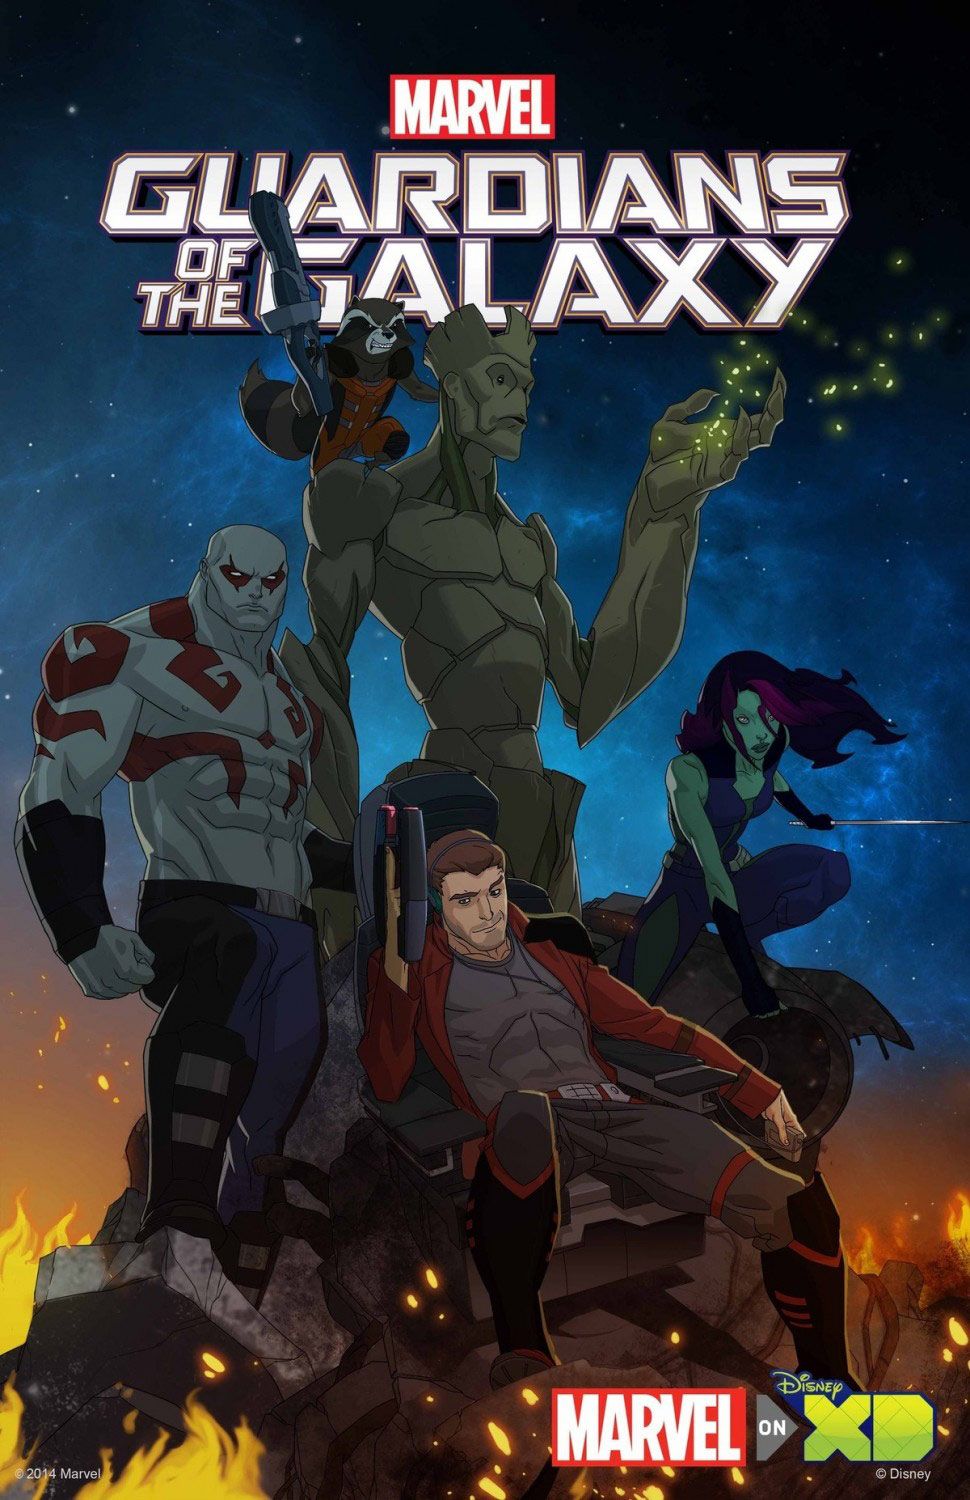 guardians-of-the-galaxy-poster-image-1